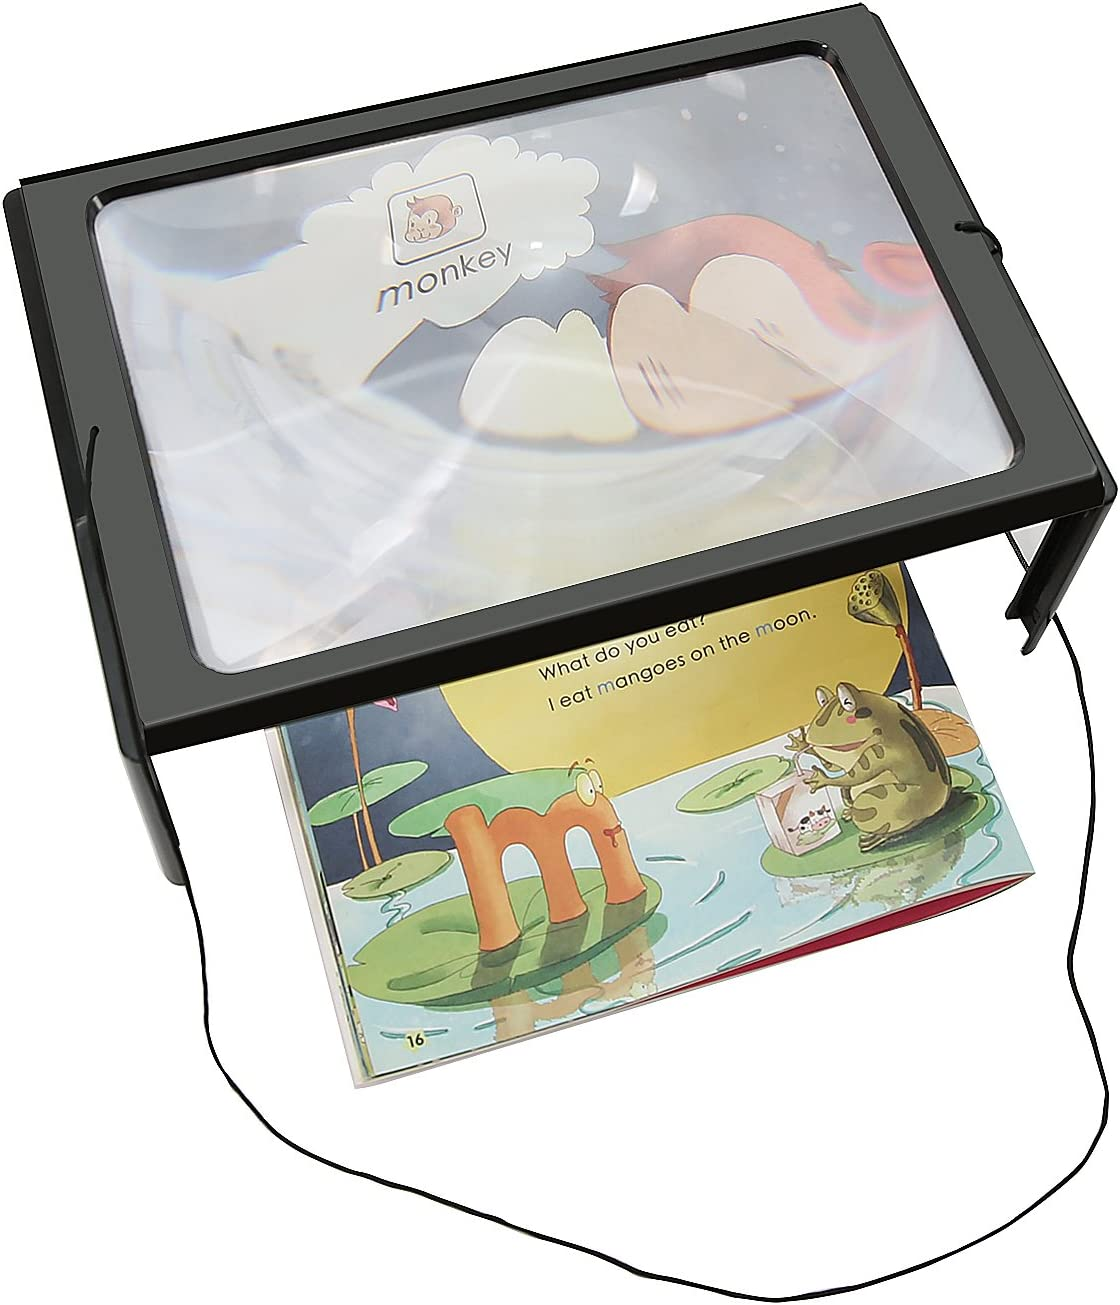 theGizmoMart Hands-free Full Page Magnifier for Reading Sewing Crafts Handicraft Hobby with Stand /& Neck Cord 3X Magnification